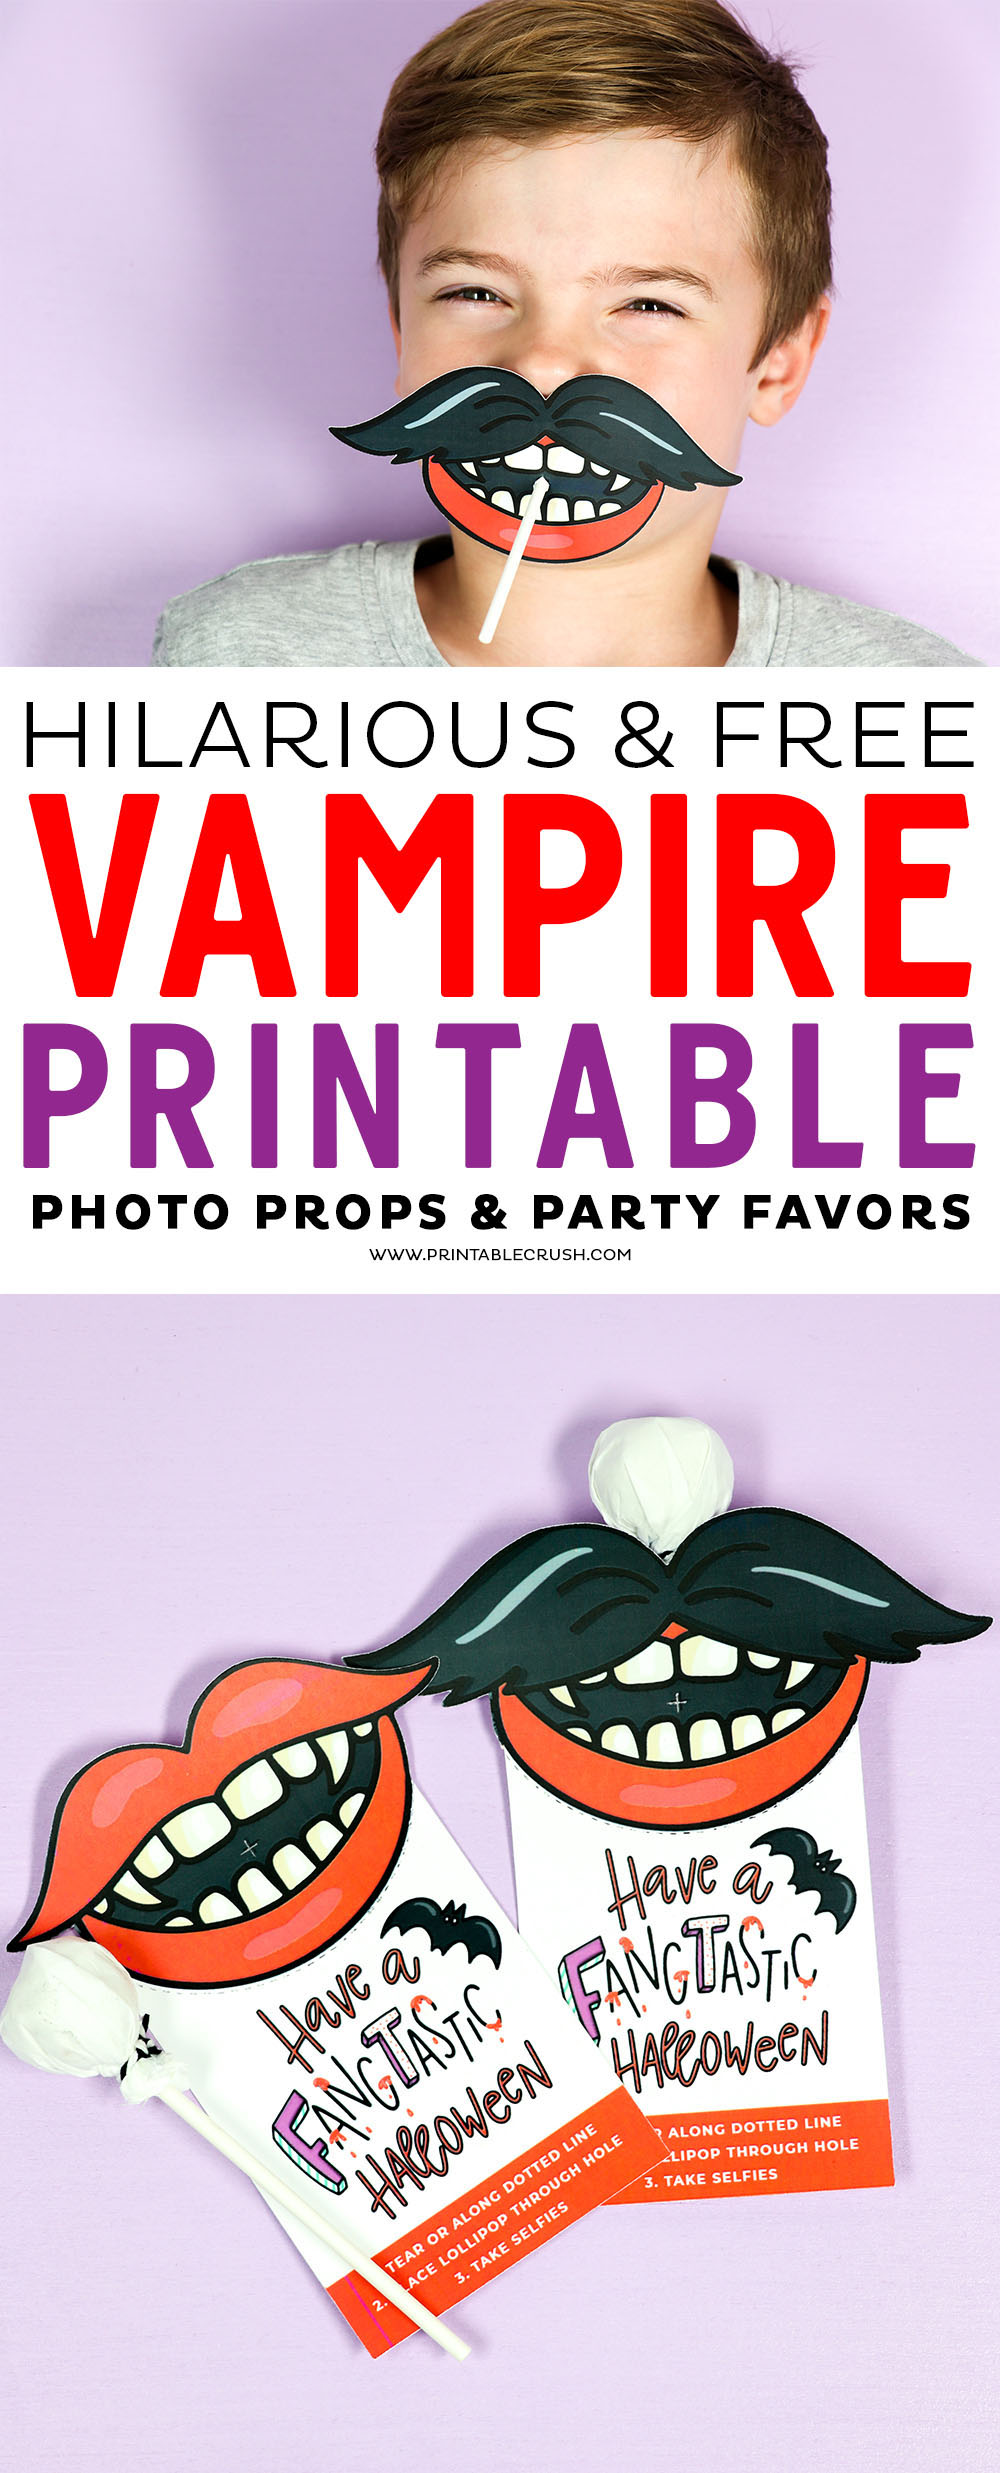 These FREE Vampire Halloween Printables are hilarious and perfect to give out for Halloween parties or trick or treat gifts! #vampireprintable #freehalloweenprintable #halloweenprintable #halloweenparty #halloweenphotoprops via @printablecrush